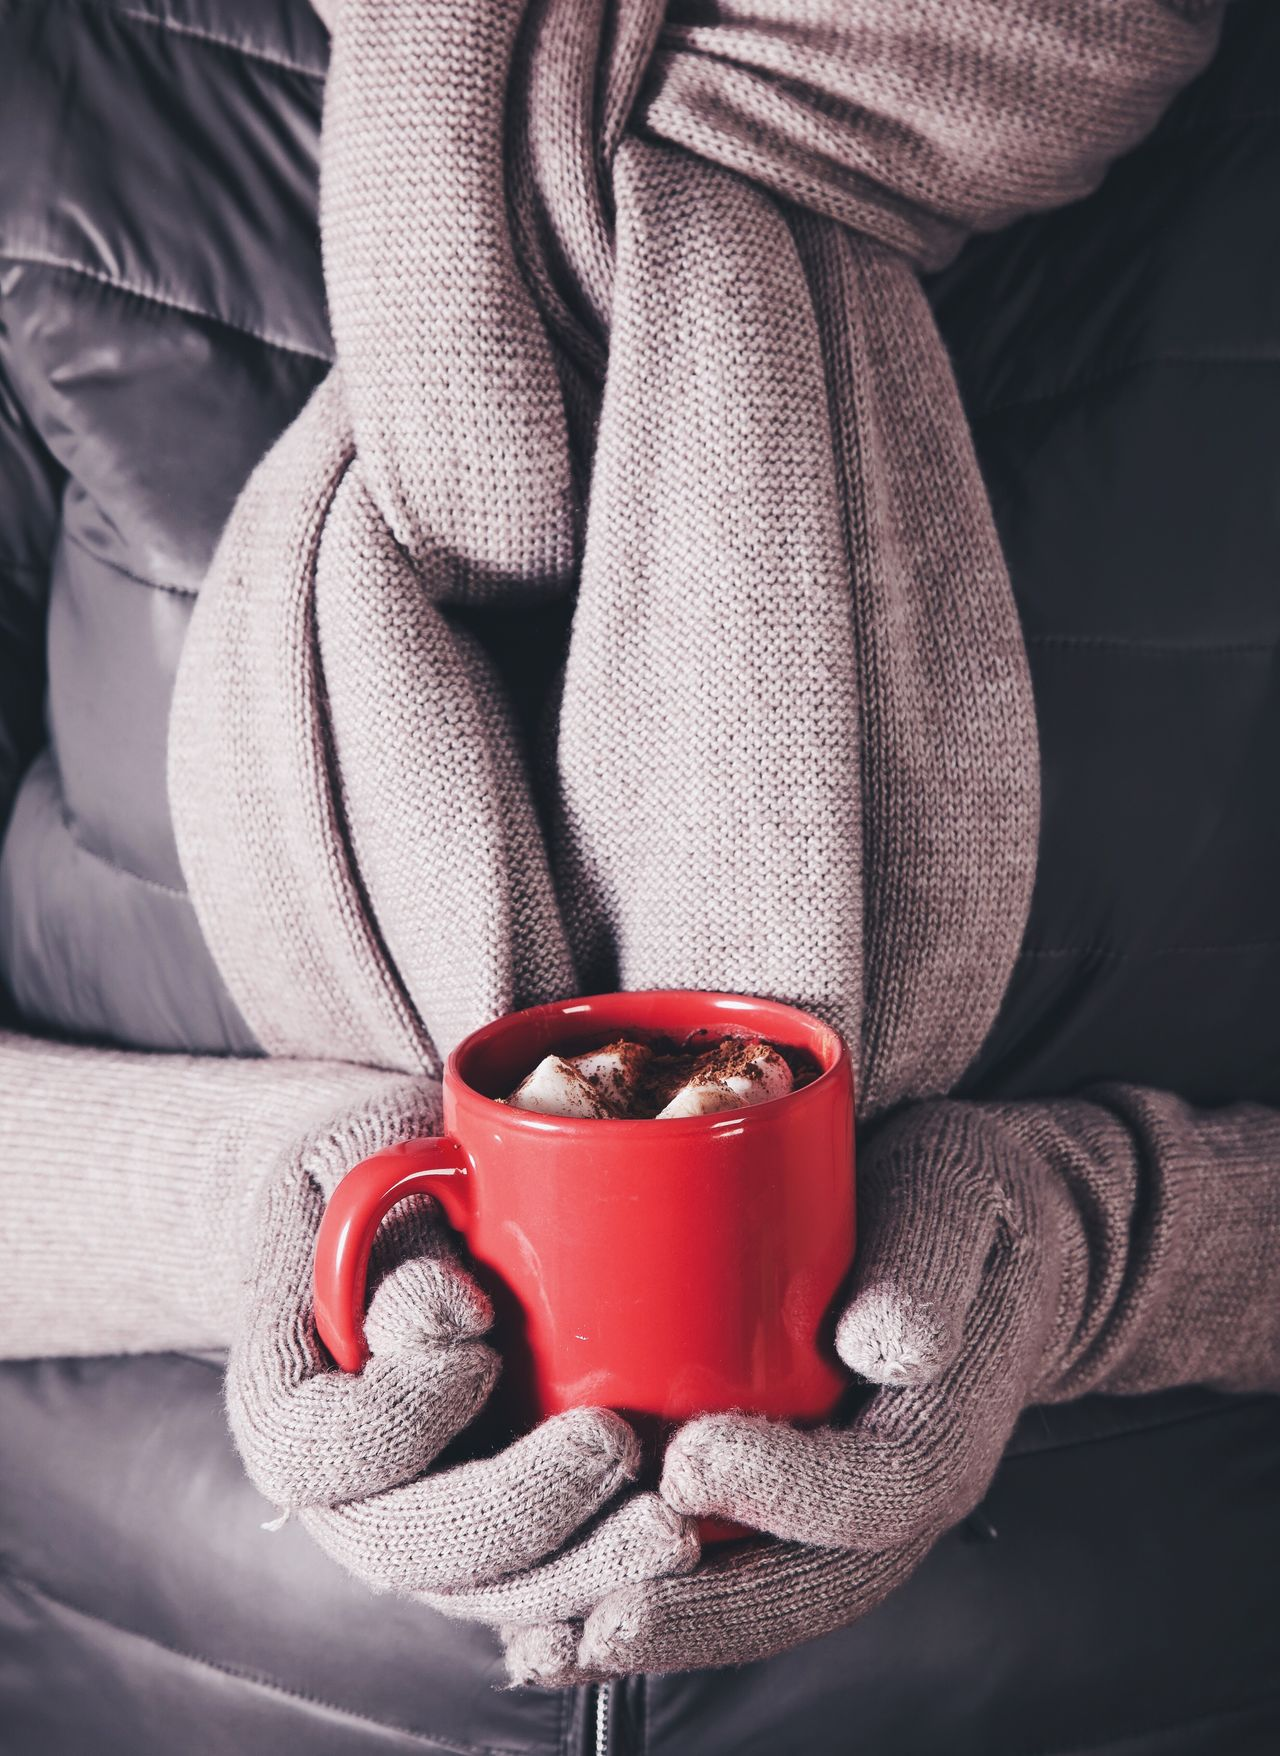 Holding Red One Person Food And Drink Winter Midsection Refreshment Drink Close-up Human Hand Low Section Freshness Day Human Body Part People Traditional Chocolate Hot Chocolate Marshmallows Warm Hot Always Be Cozy Gloves Cozy Cold Temperature